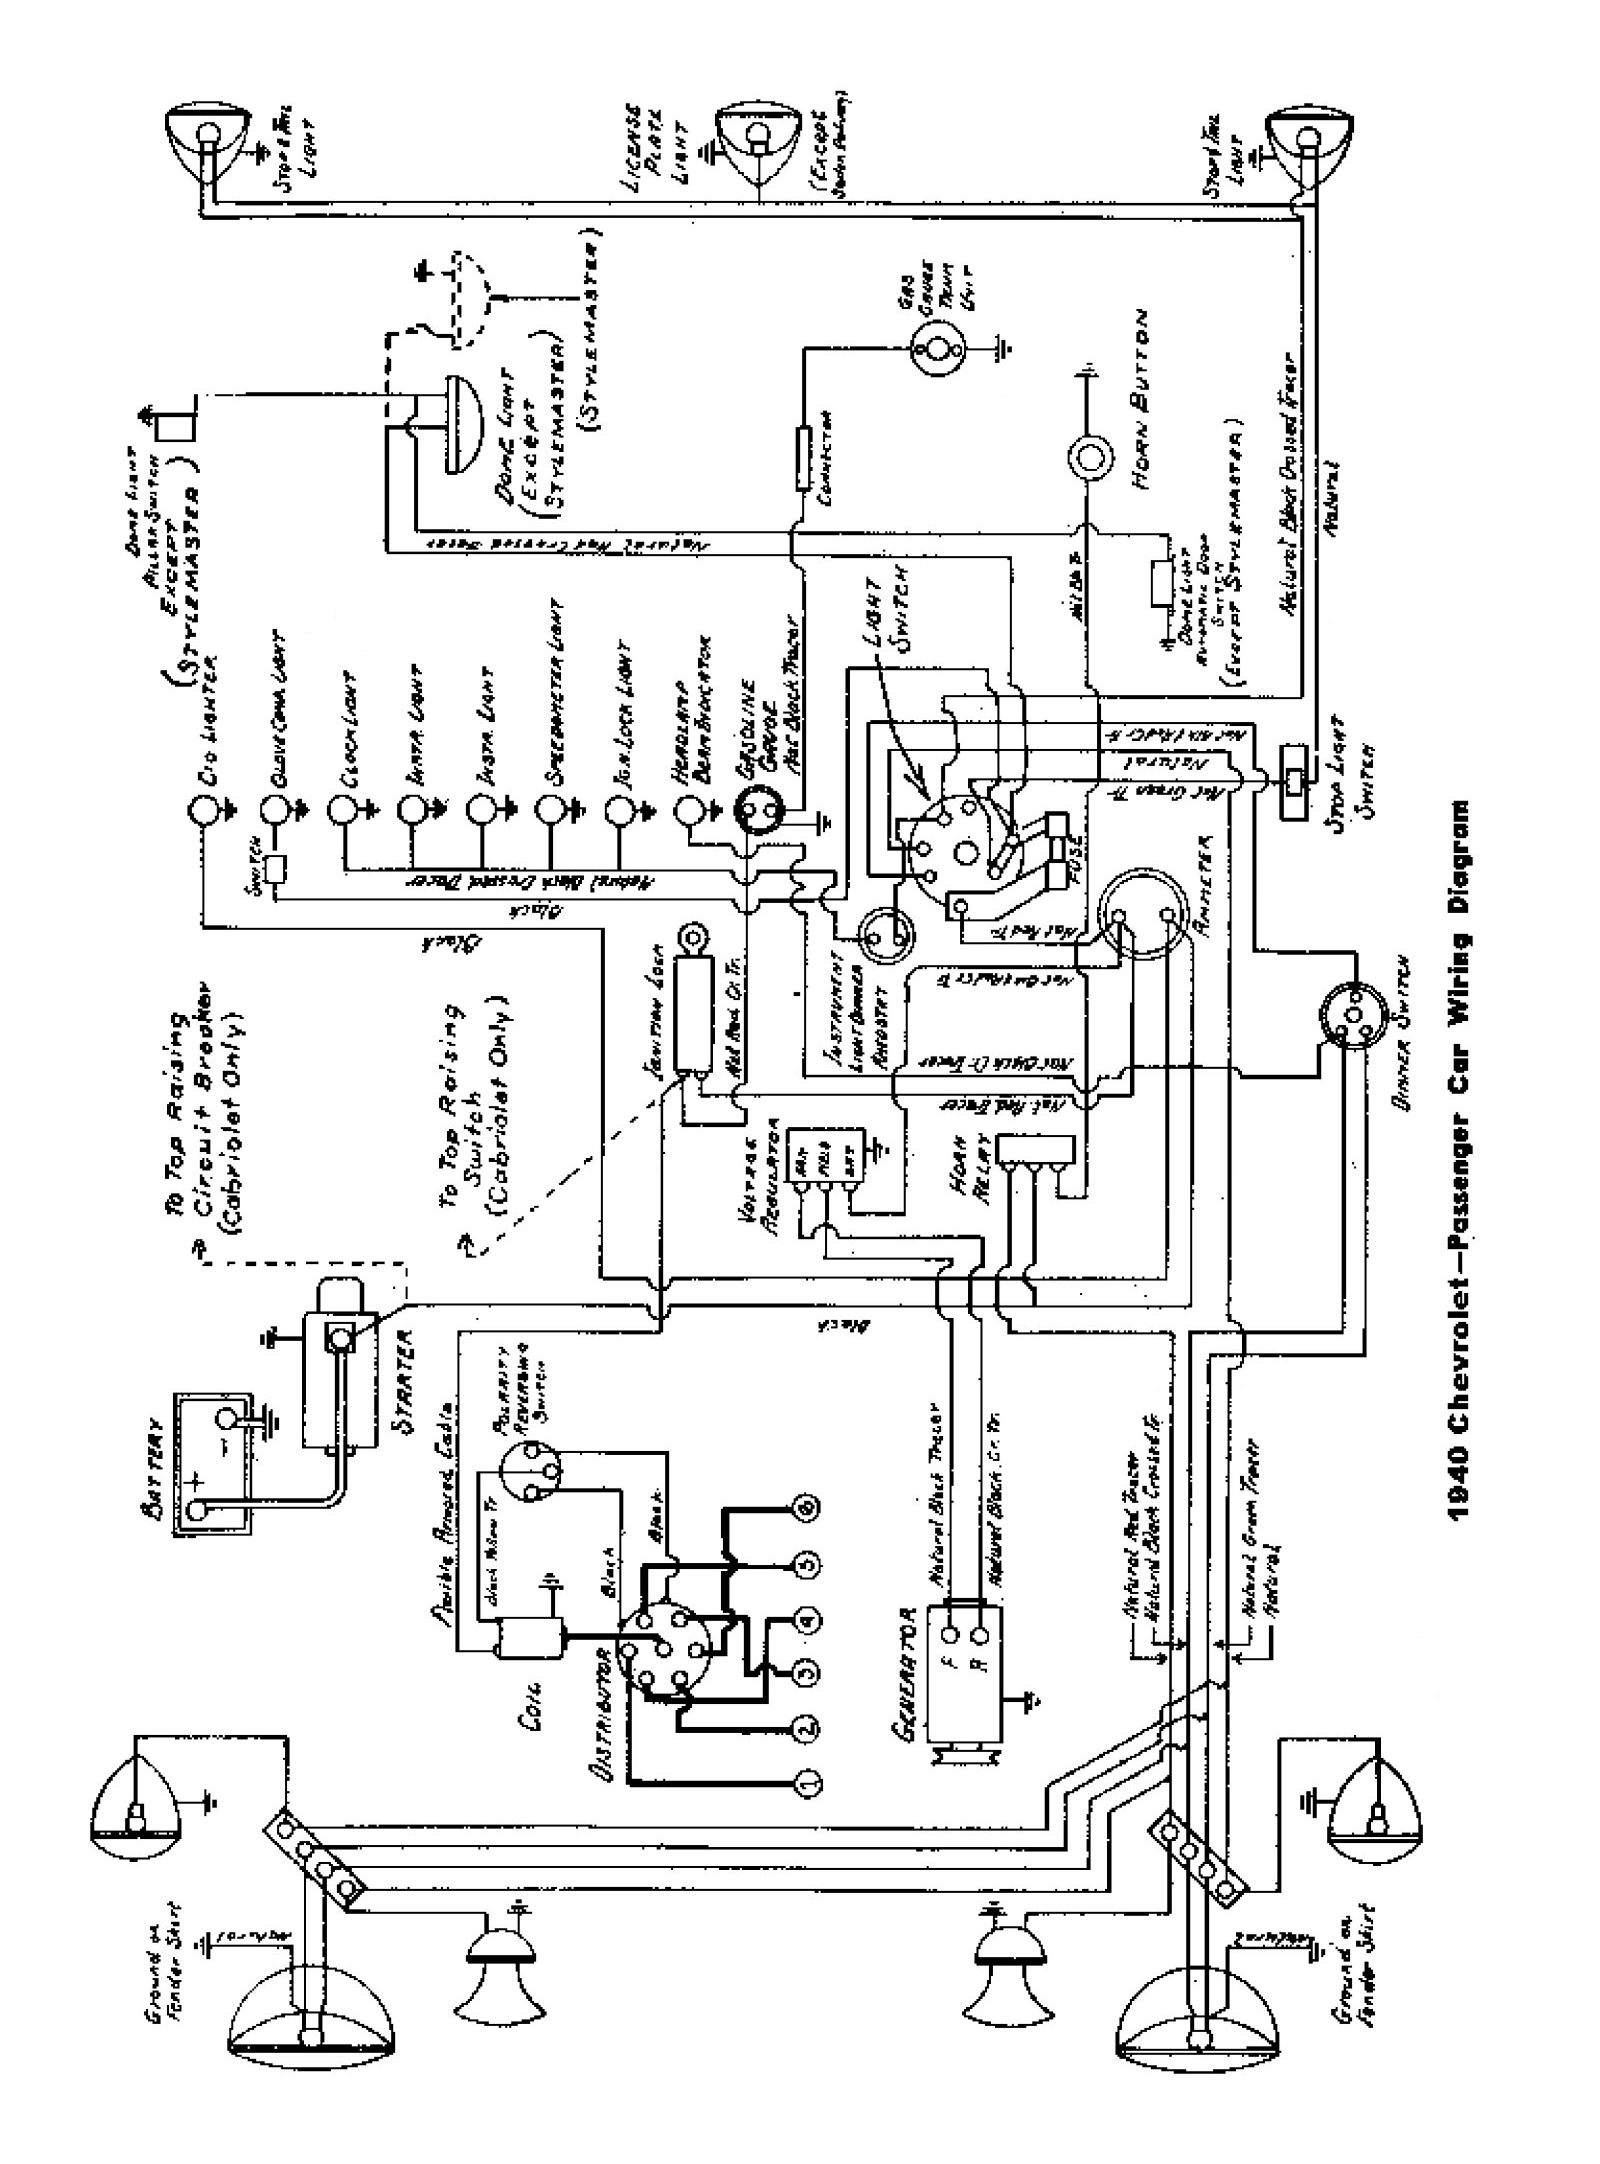 40car chevy wiring diagrams painless wiring harness 1958 chevy truck at panicattacktreatment.co